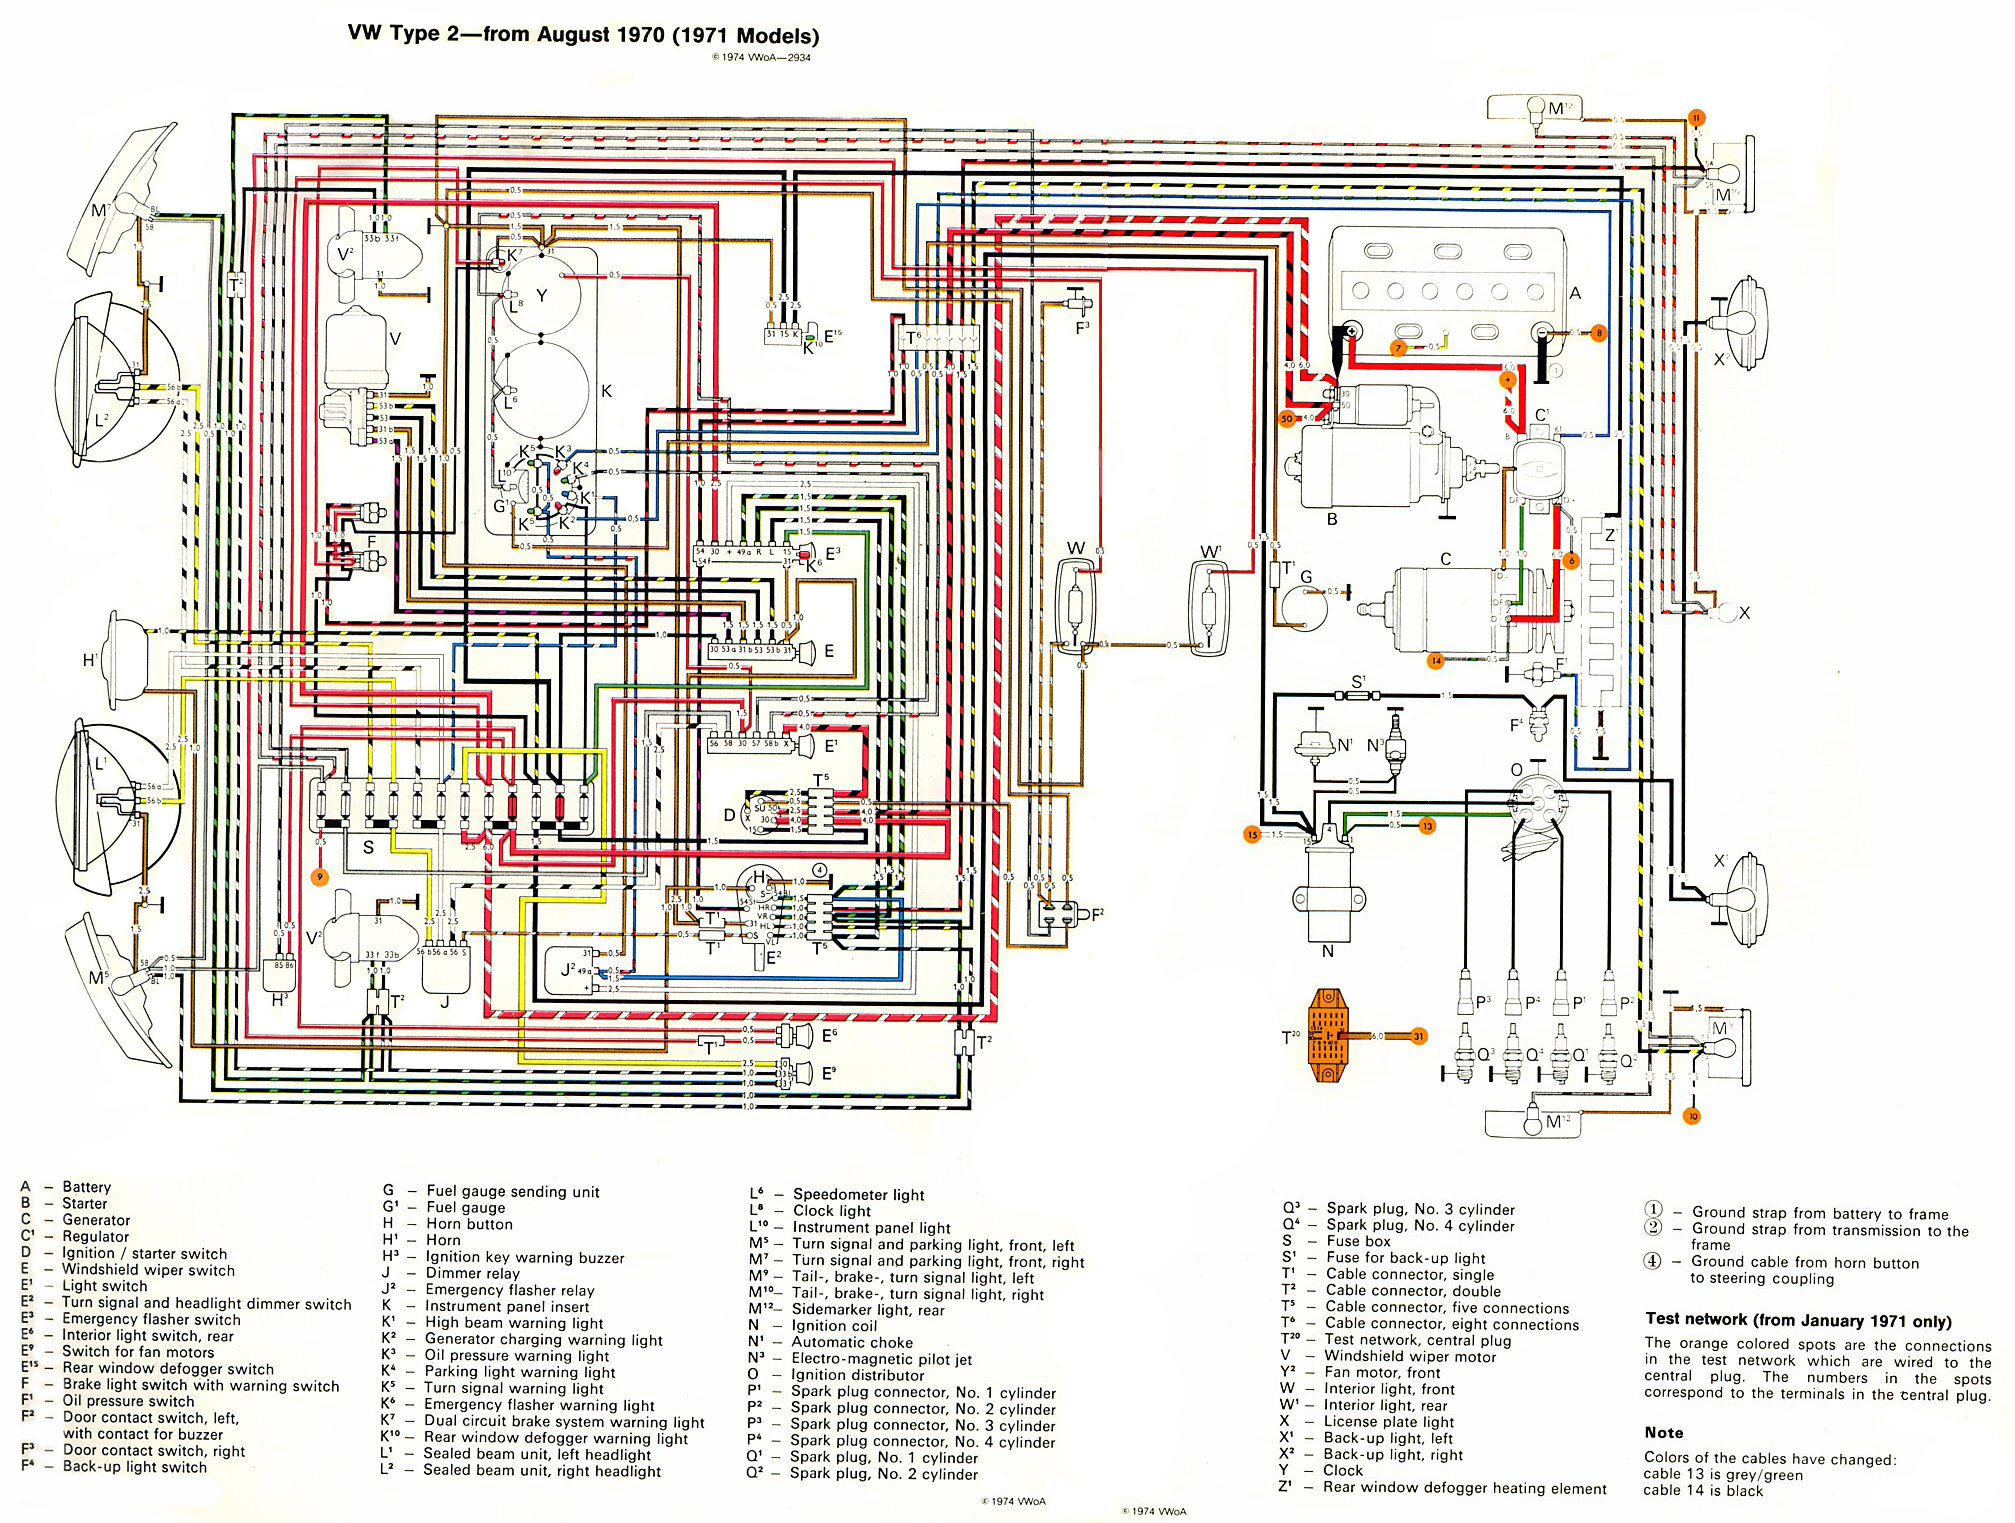 vw t wiring diagram vw image wiring diagram thesamba com type 2 wiring diagrams on vw t4 wiring diagram